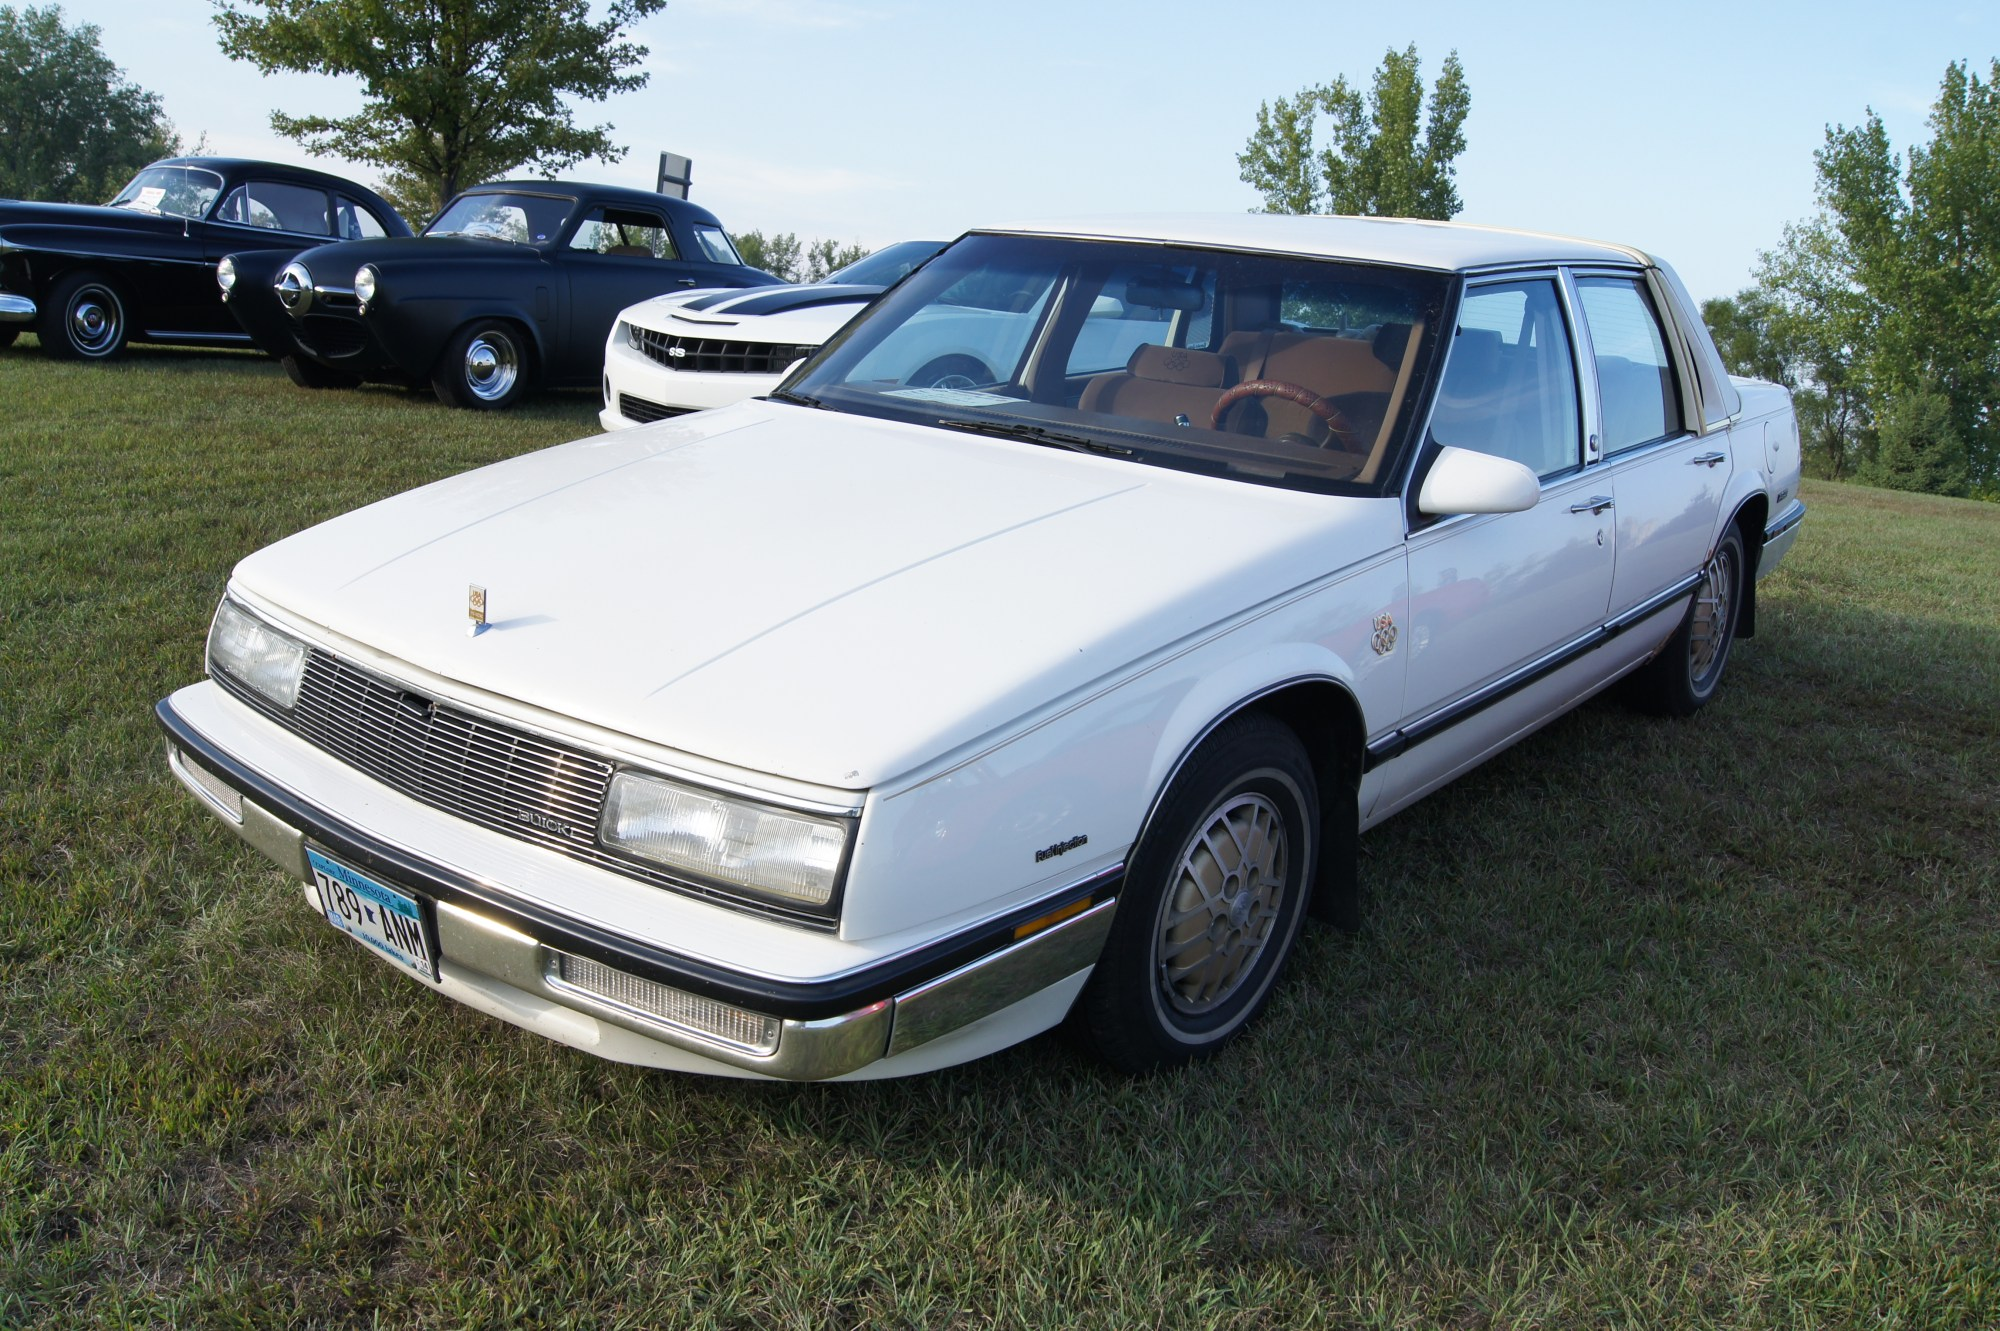 hight resolution of file 1988 buick lesabre olympic edition 9844831866 jpg